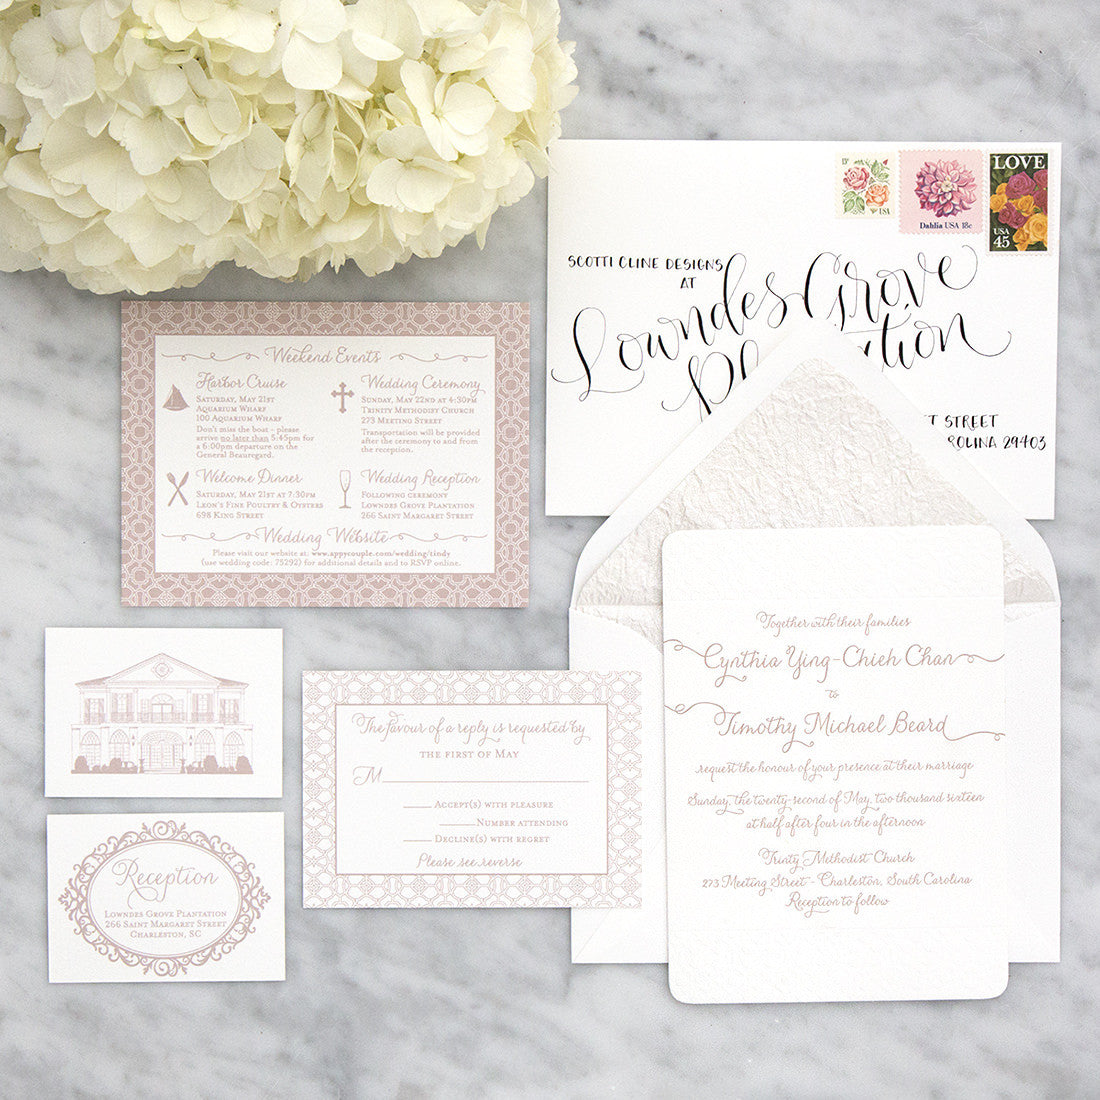 Trailing Names and Pattern Letterpress Invitation by Scotti Cline Designs